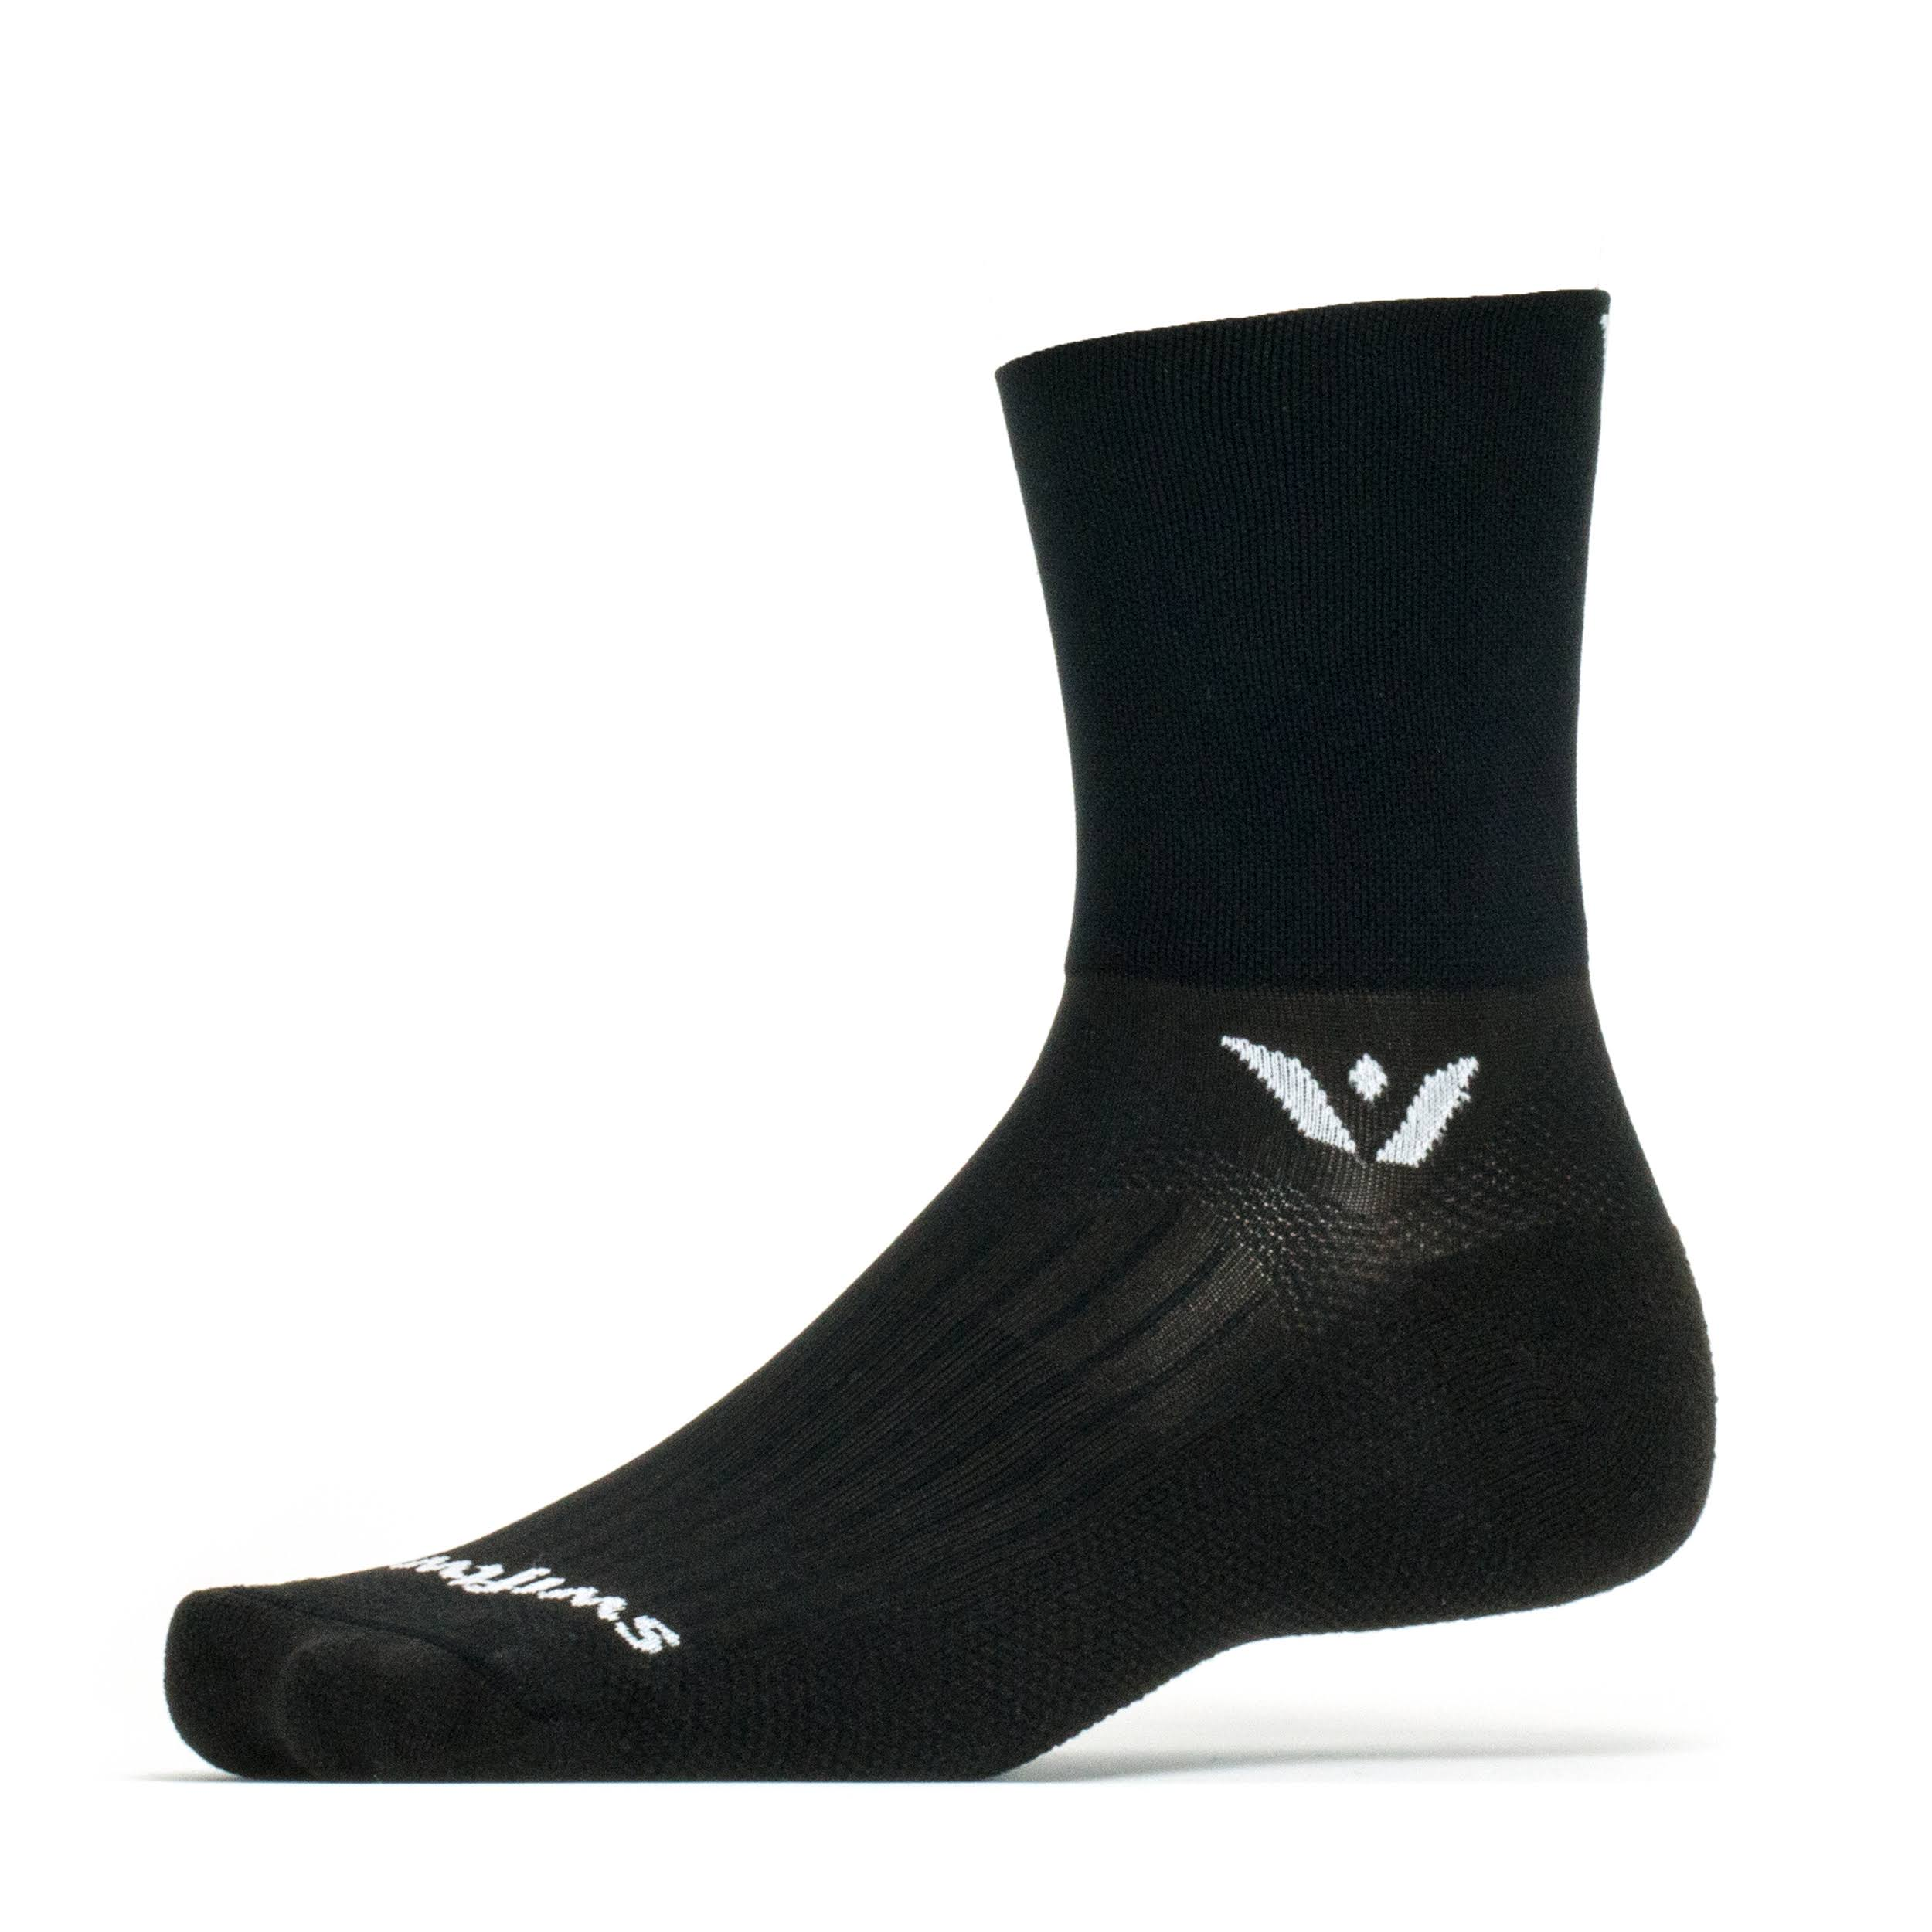 Swiftwick Aspire Sock - Black, X-Large